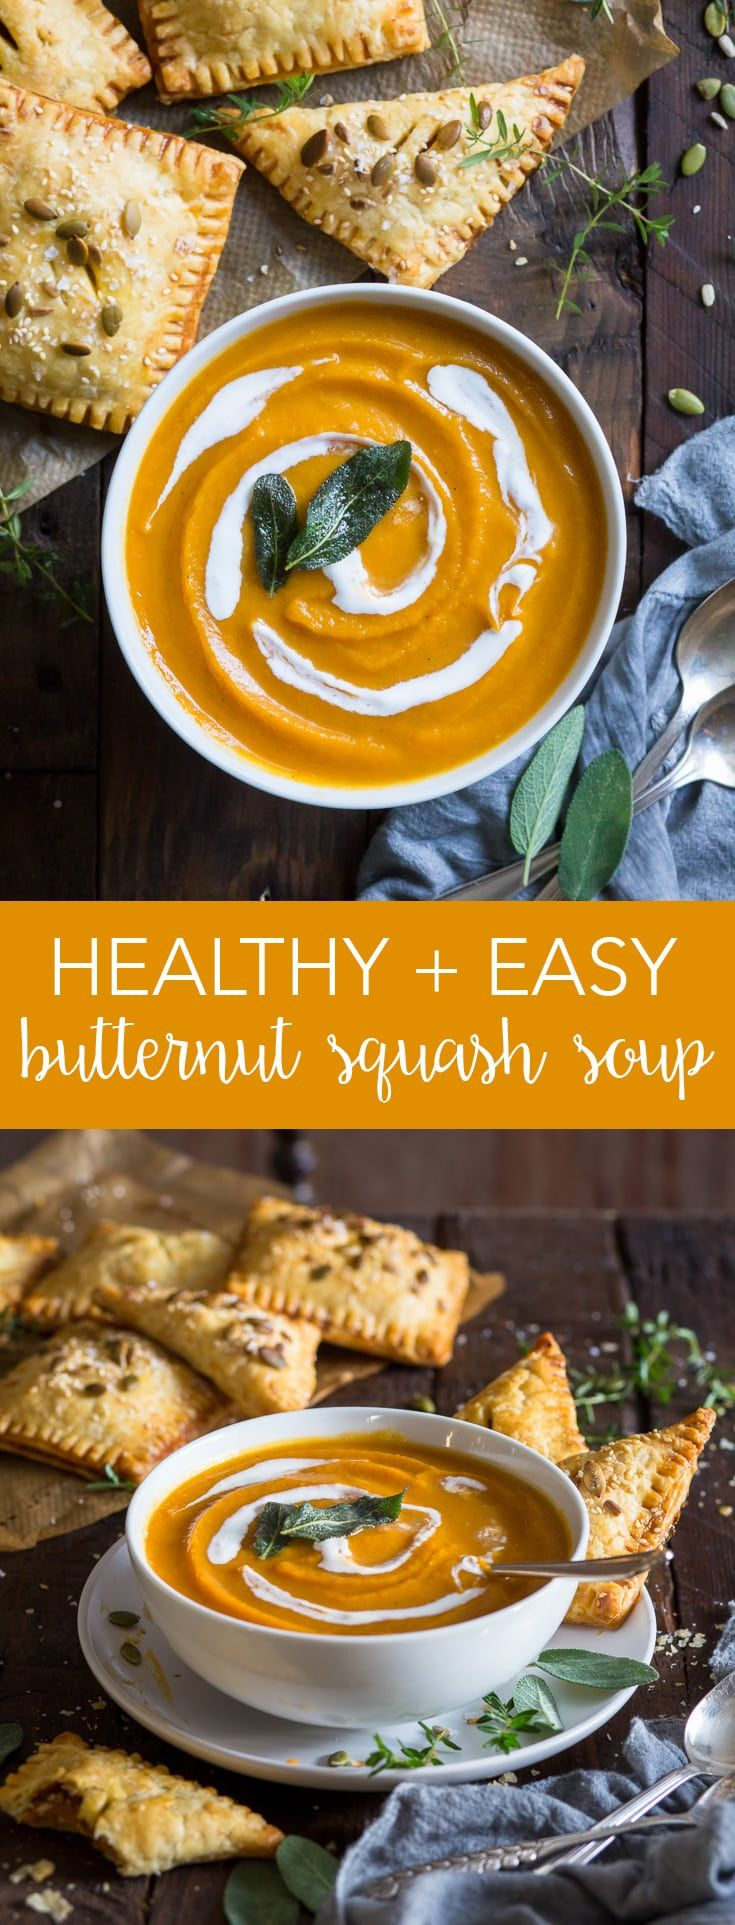 Roasted Butternut Squash Soup (Gluten Free, Dairy Free, Vegan, Paleo) – This healthy (and super creamy) roasted butternut squash soup couldn't be easier to make. With the addition of caramelised onions and a generous pinch of nutmeg, it's the perfect fall comfort food. Plus, it's dairy free, vegan and paleo! Pumpkin recipes. Pumpkin soup. Butternut squash recipes. Easy soup recipe. Healthy lunch ideas. Healthy soup. Vegan pumpkin soup. Thanksgiving recipes. #pumpkin #healthyrecipes